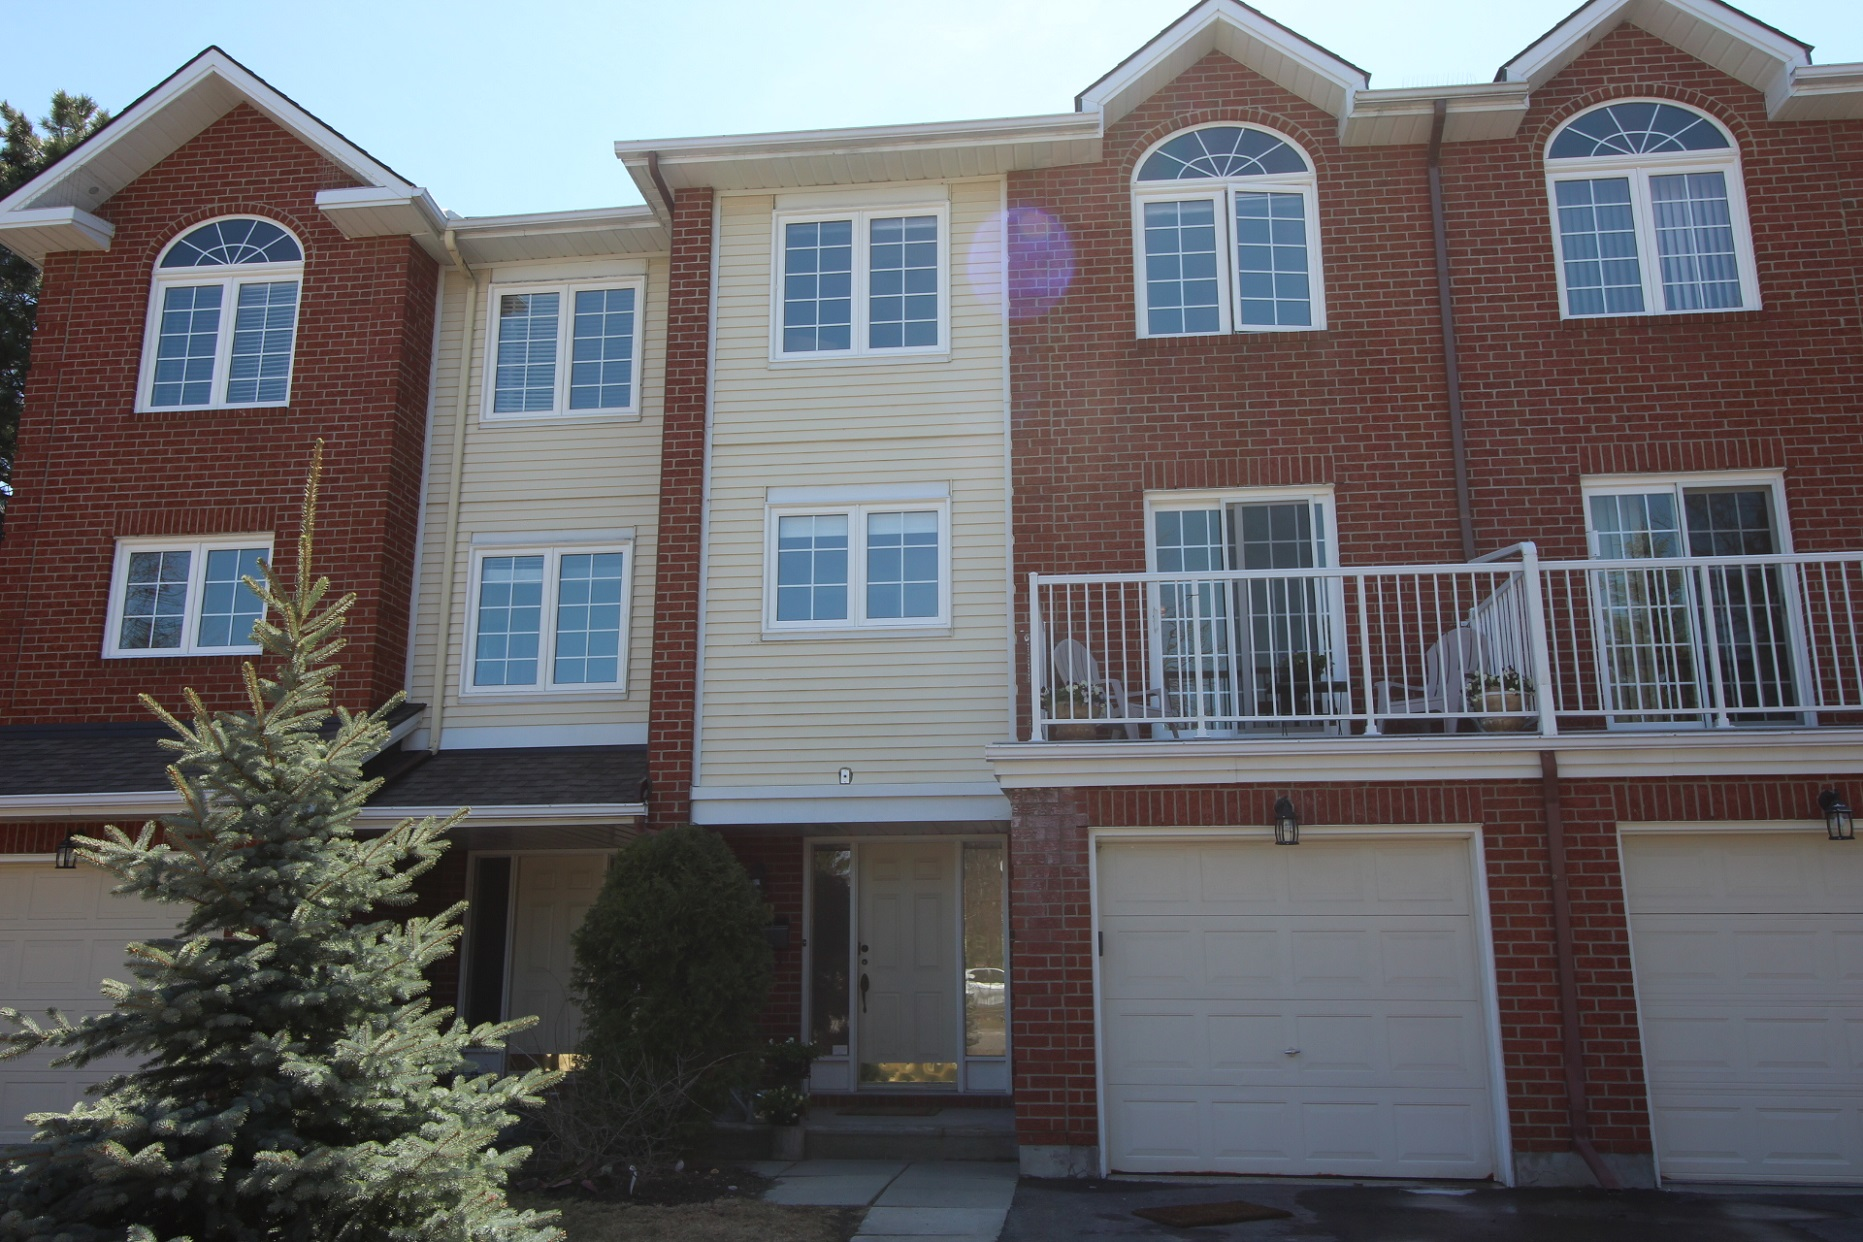 18 Wrenwood Cres - Spacious 3 Storey Condo Townhome in popular Centrepointe!